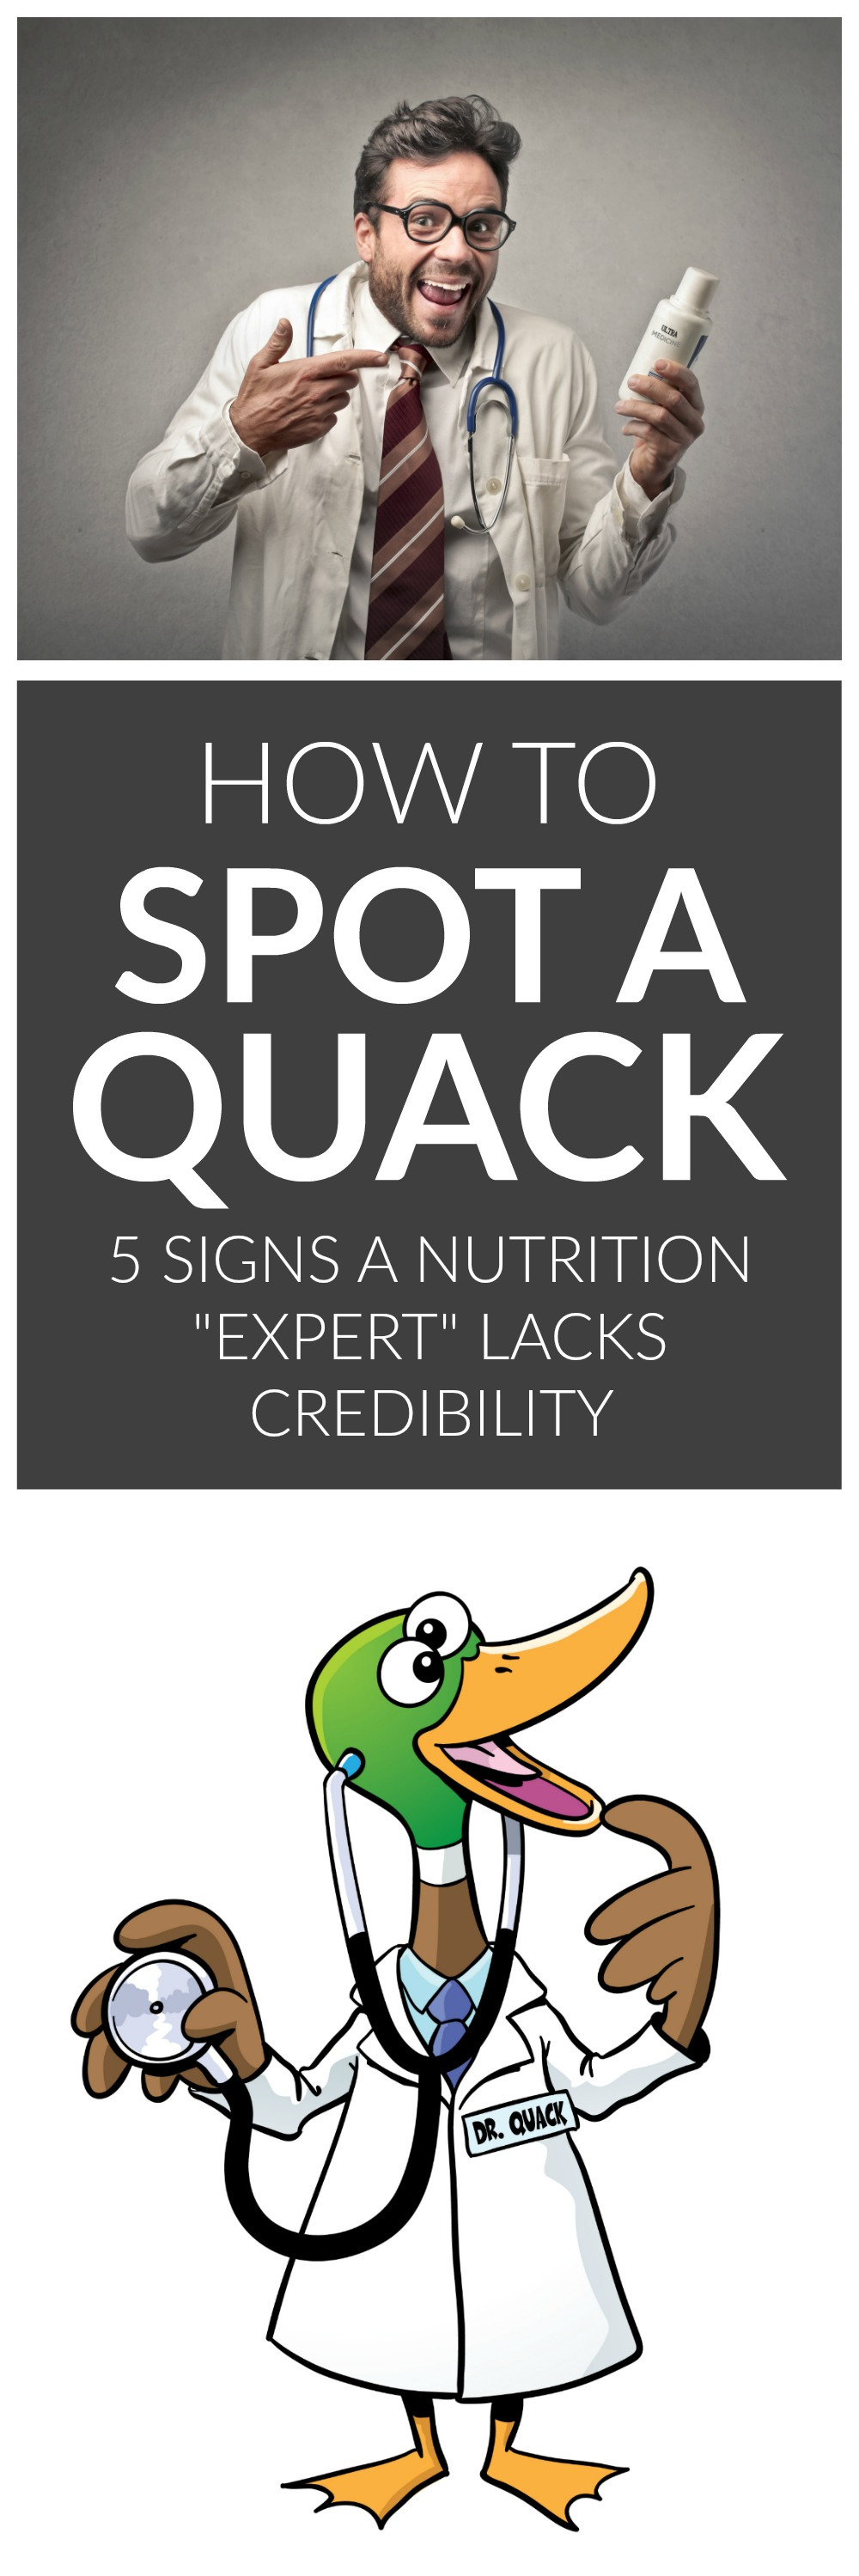 How to Spot A Quack- 5 Signs A Nutrition Expert Lacks Credibility